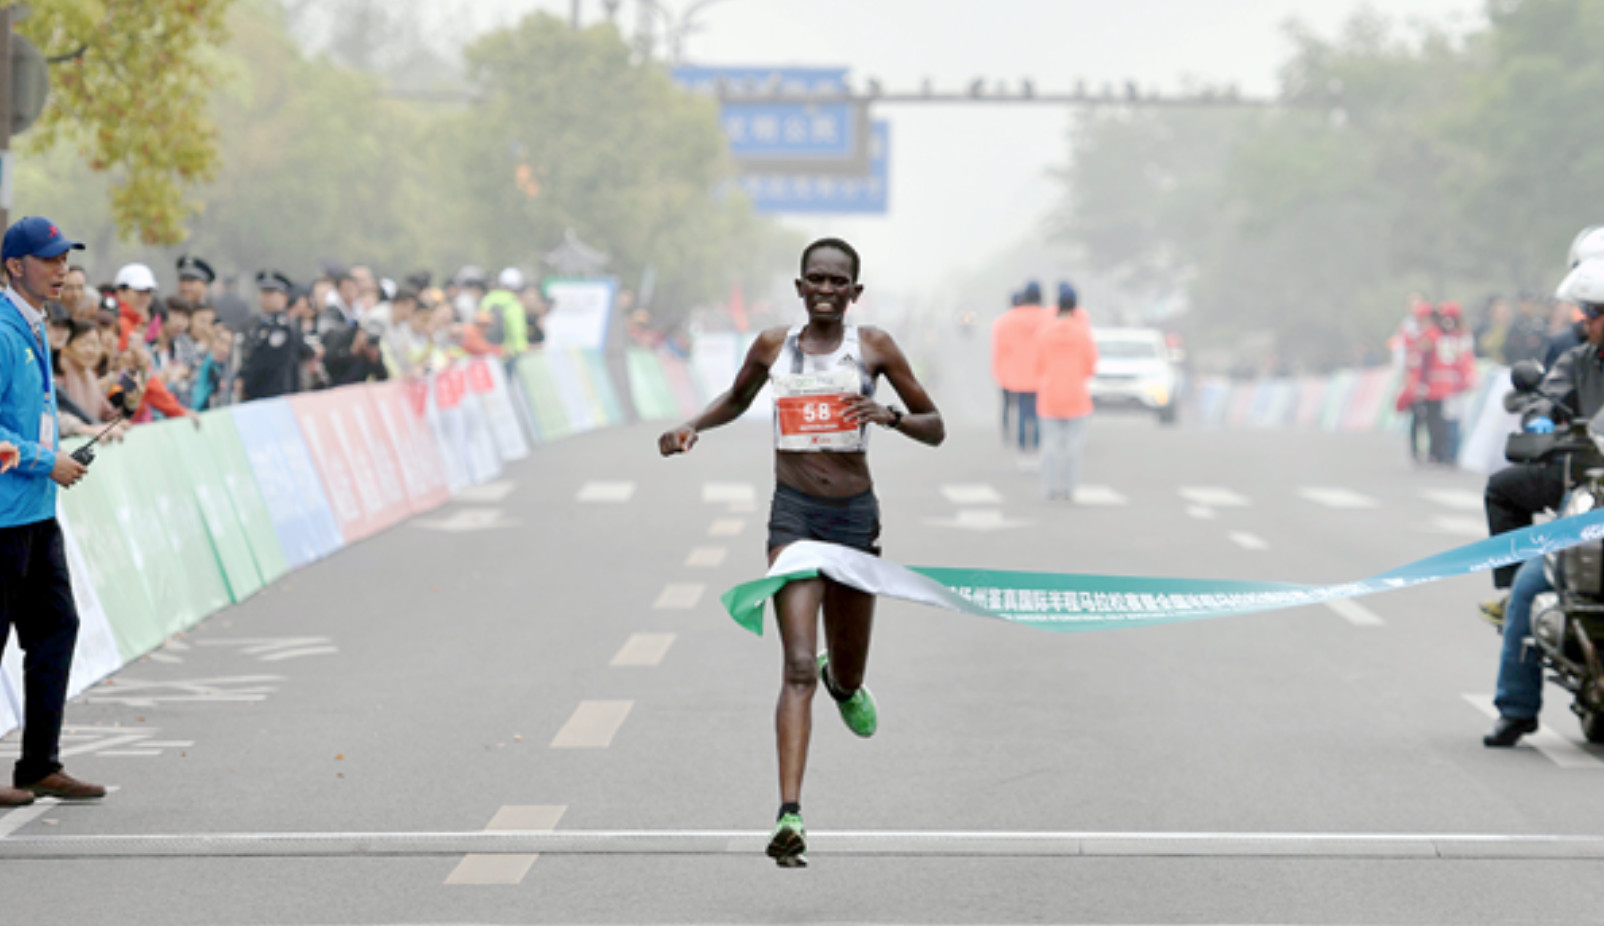 Nengampi and Taegu are the winners at the Yangzhou Jianzhen half marathon in China